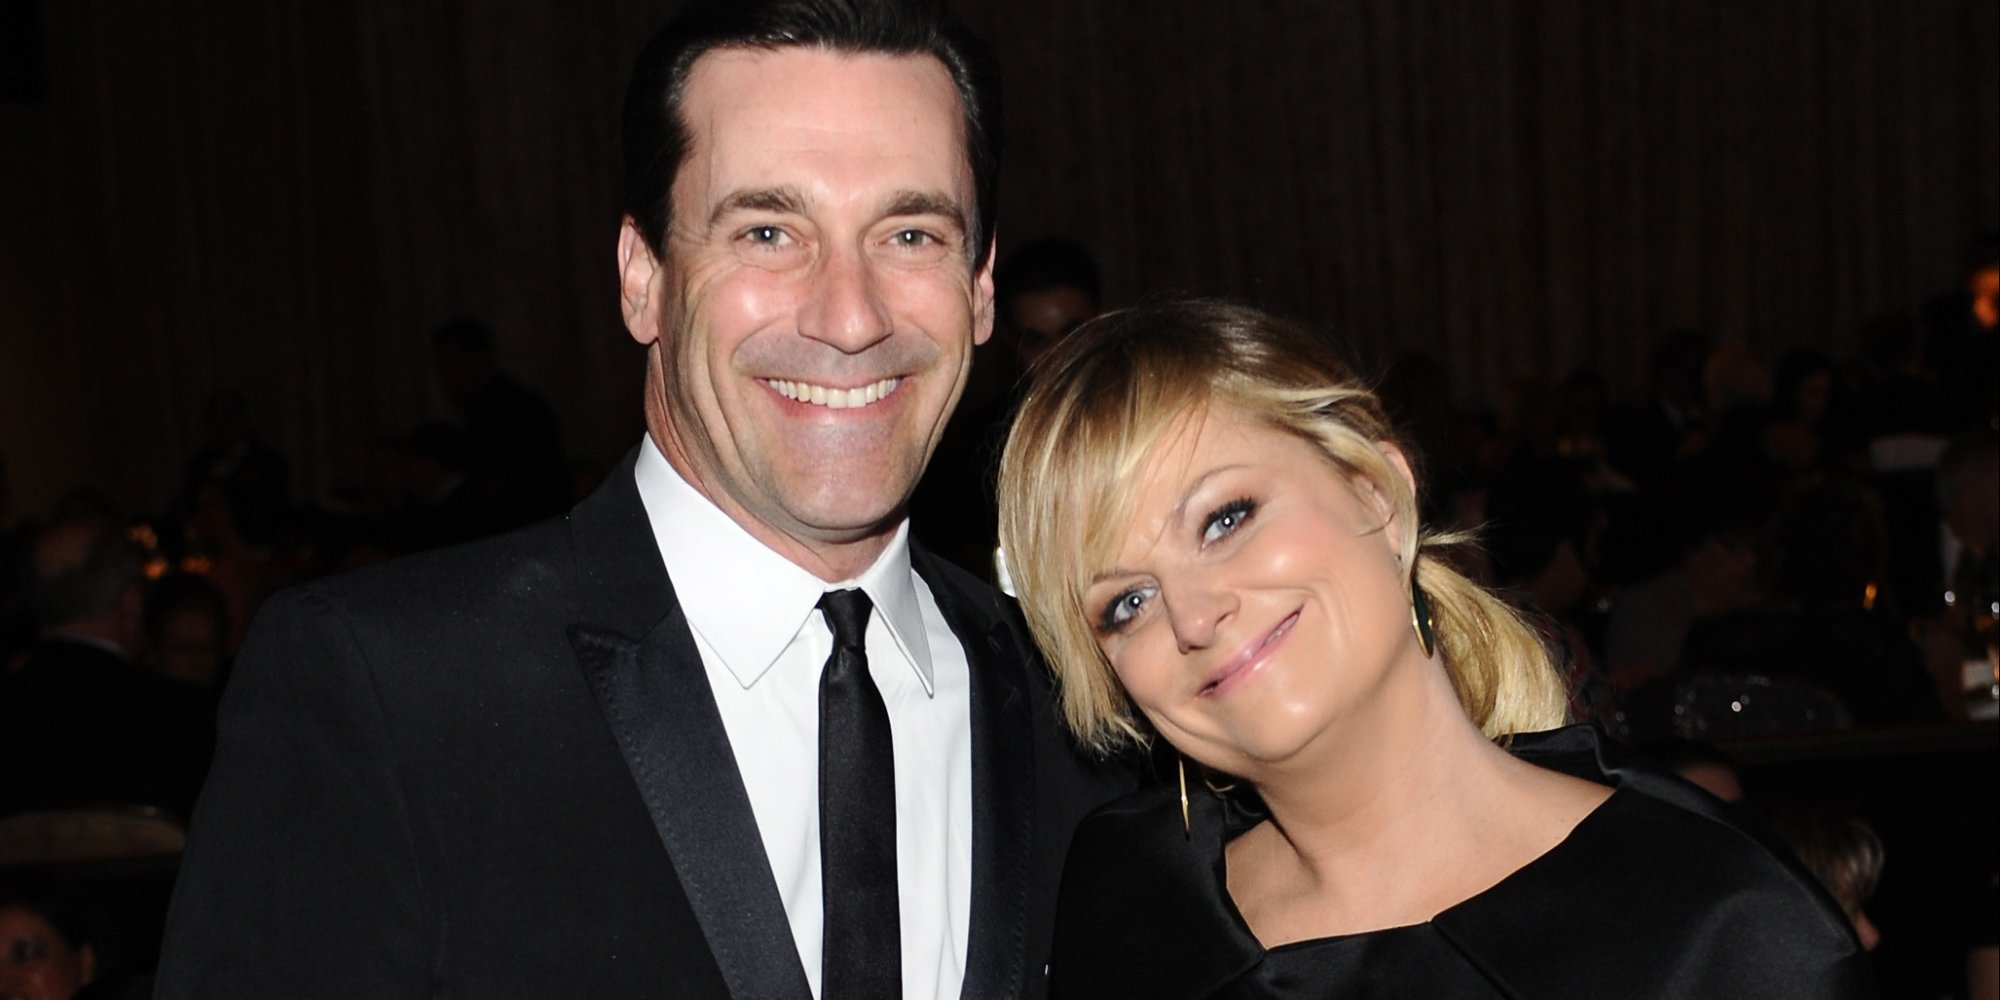 Jon Hamm and Amy Poehler